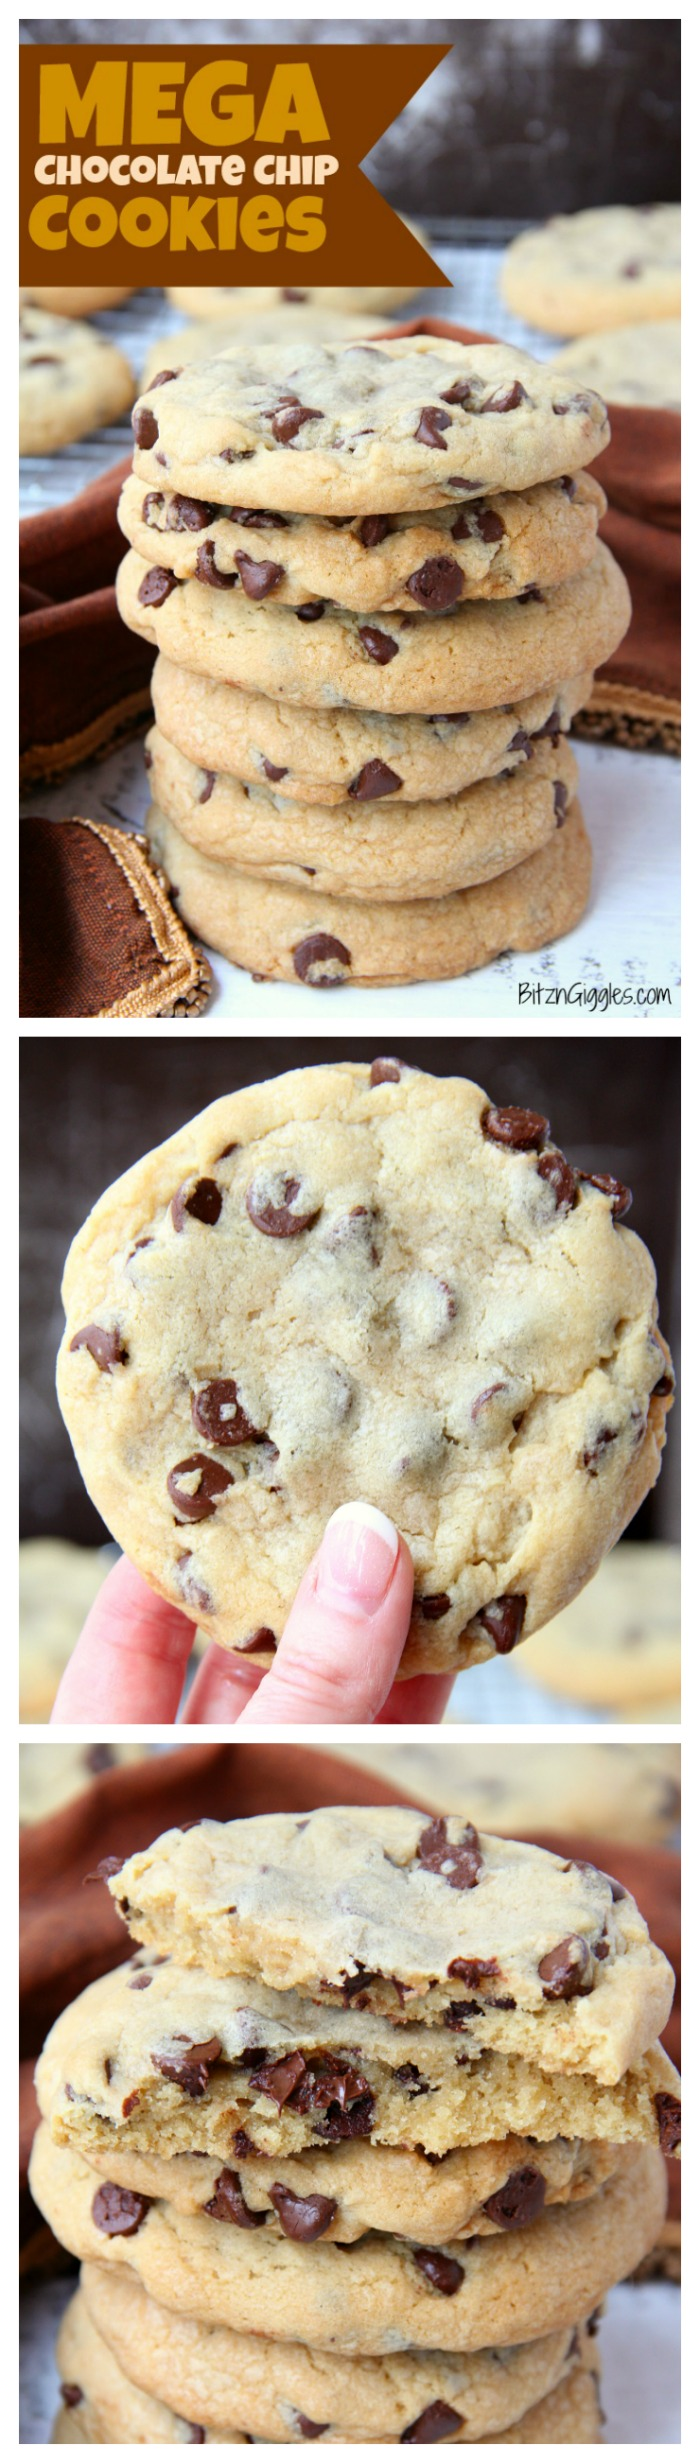 Mega Chocolate Chip Cookies - Your guests eyes will get as big as these cookies when they see and taste the soft, chewy deliciousness!